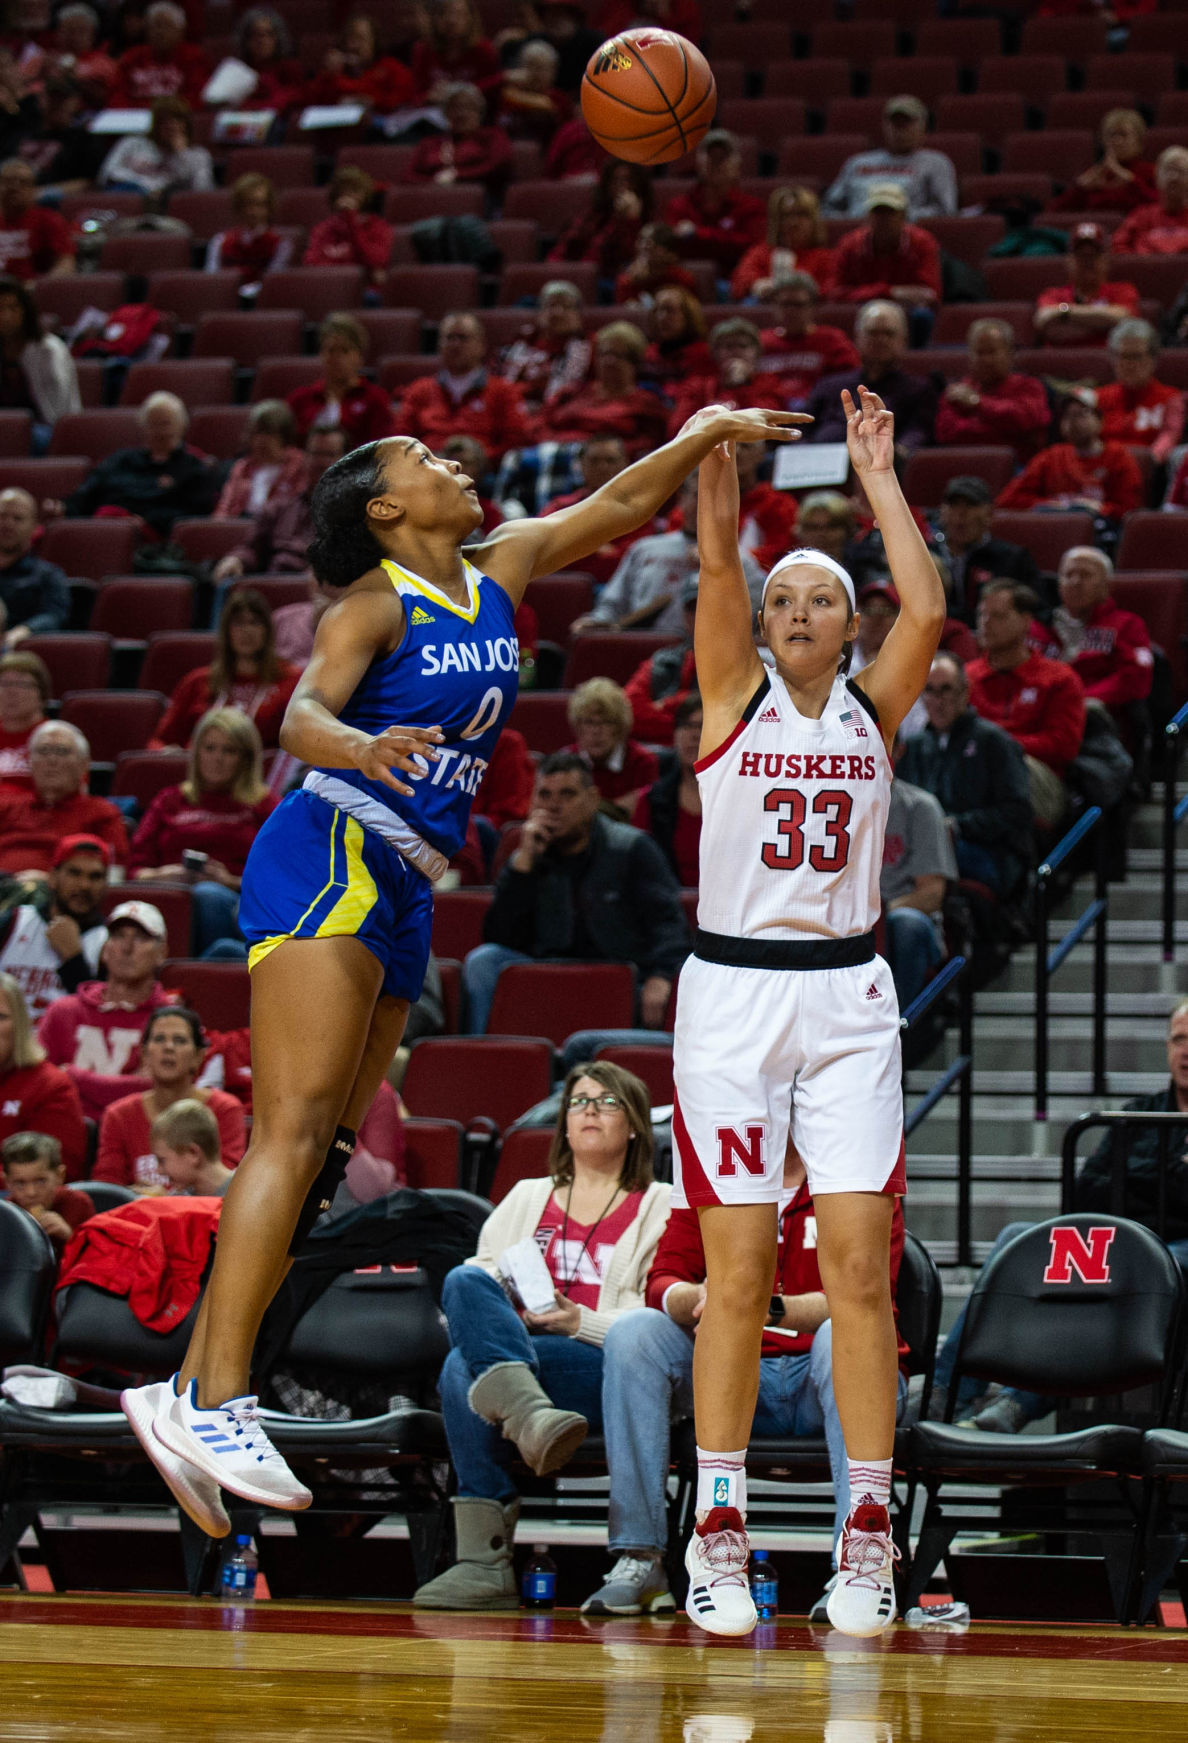 San Jose State vs. Nebraska, 12.8